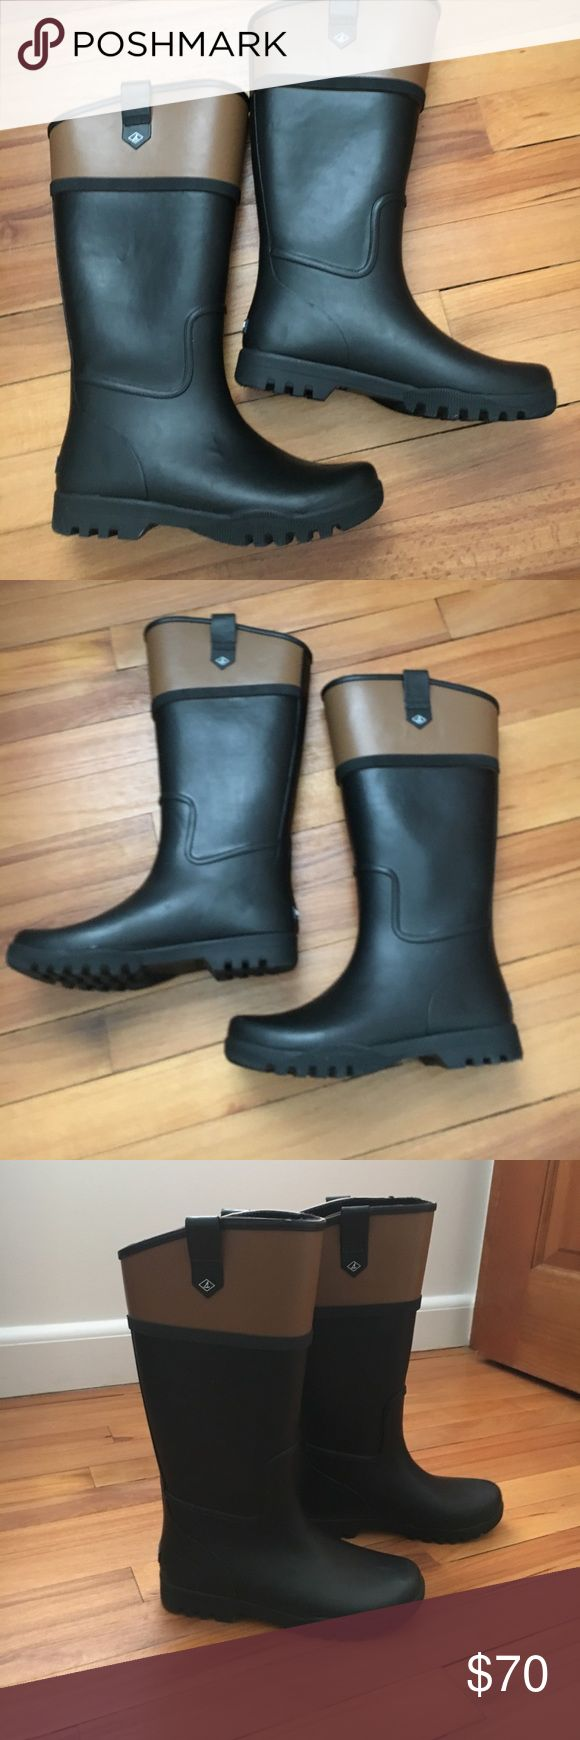 Sperry Top Sider rain boots Size 6 Sperry rain boots Size 6  excellent condition. Worn once. Small flaw shown in last pic. Purchased this way Sperry Top-Sider Shoes Winter & Rain Boots